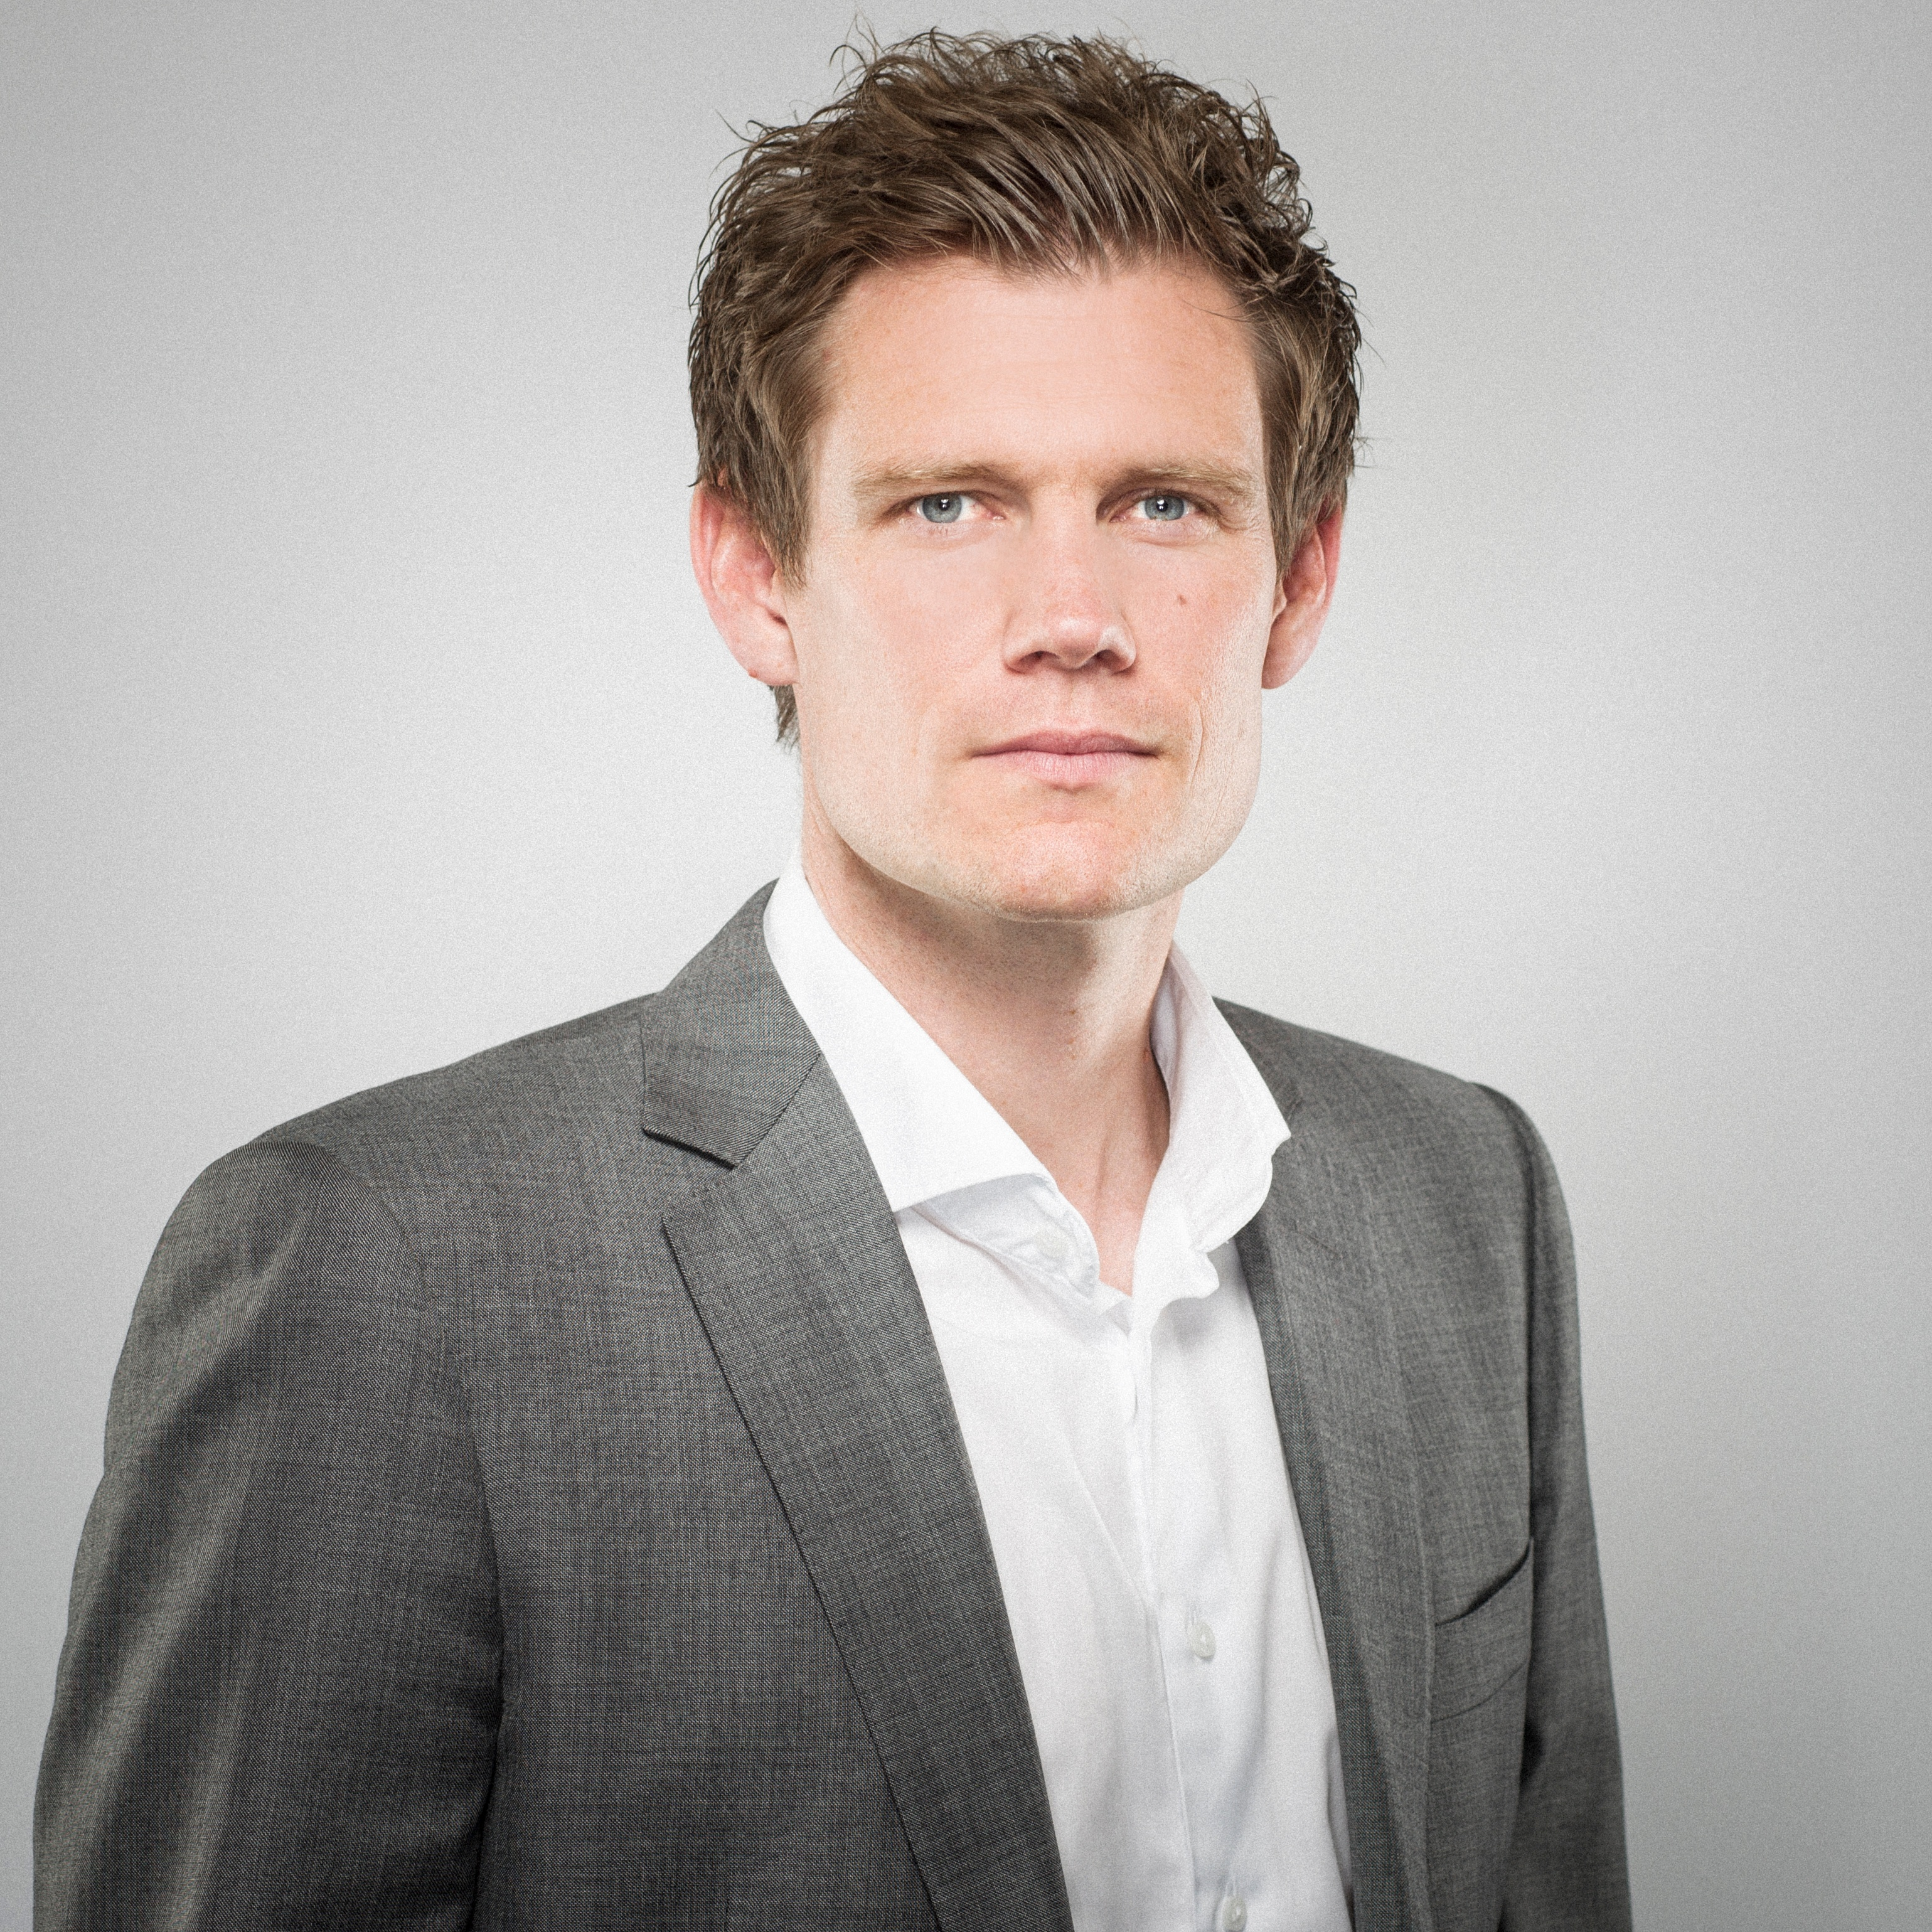 Jurjen Jongejan, Online Marketing Director